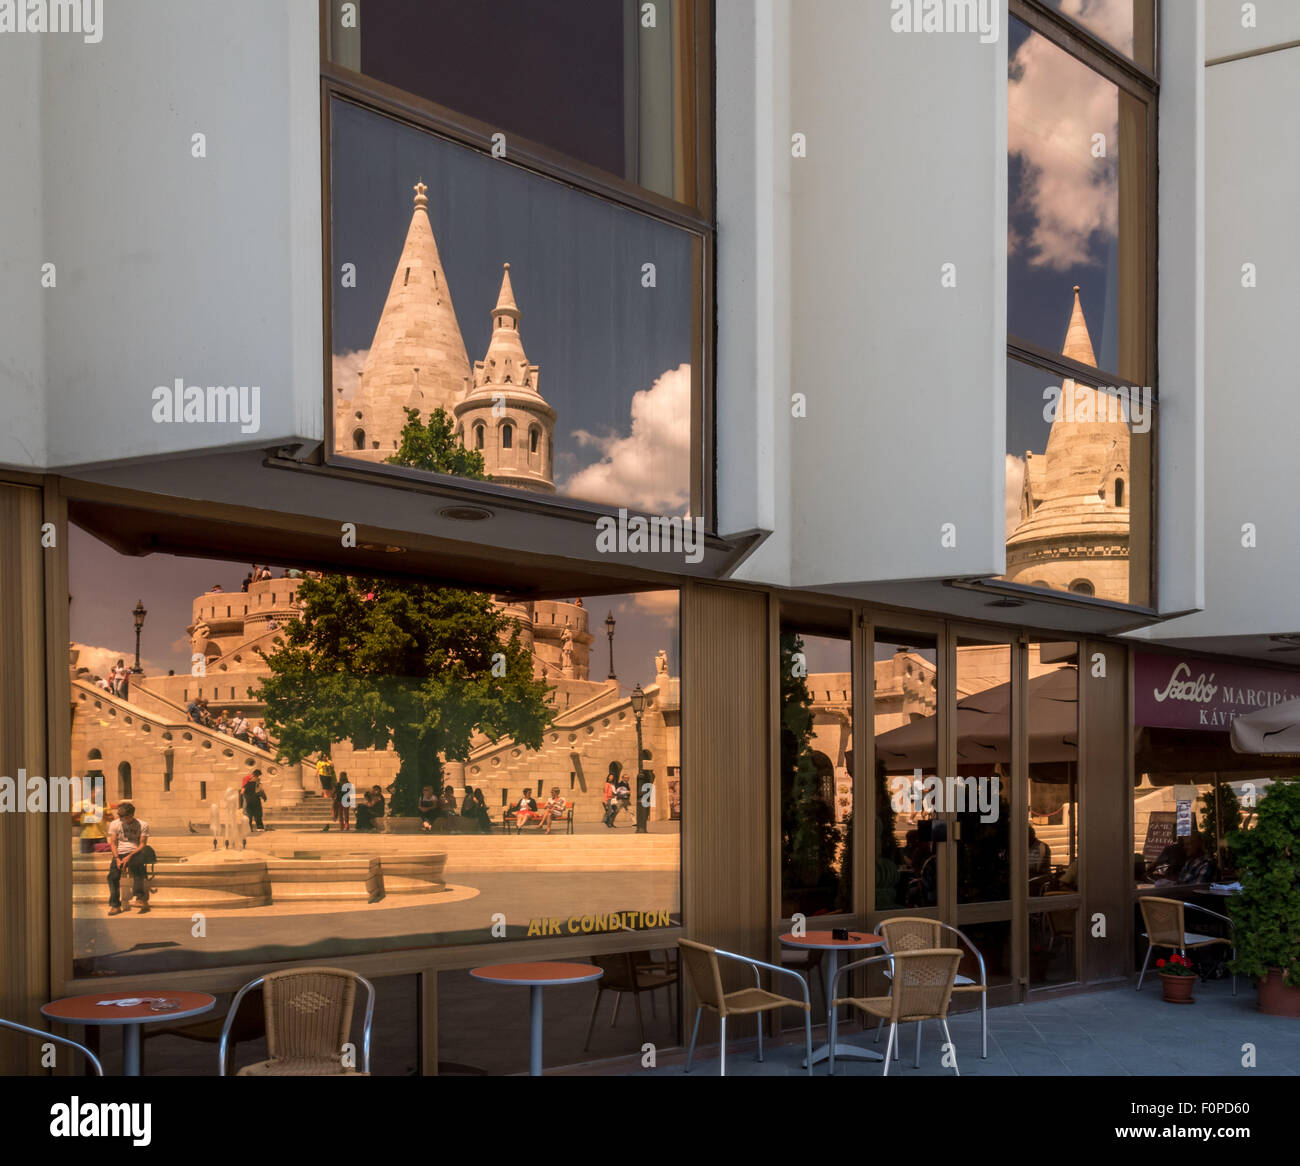 Reflections of the Fishermens Bastion, Budapest, Hungary - Stock Image